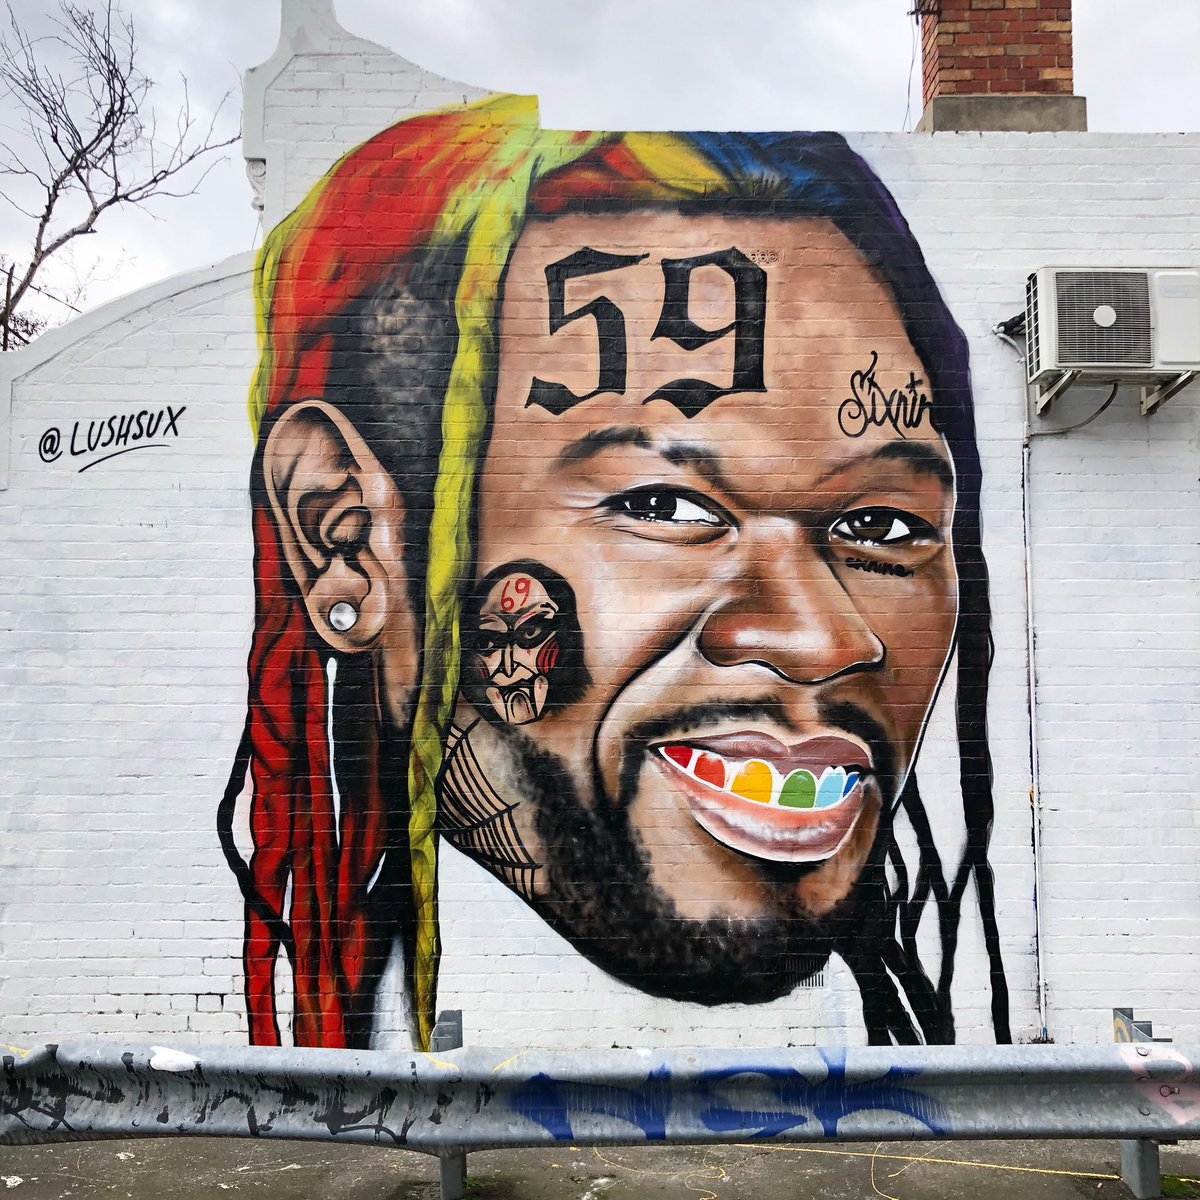 Australia S Answer To Banksy Continues To Offend Celebrities Including One Who Wants To Kill Him Artfido